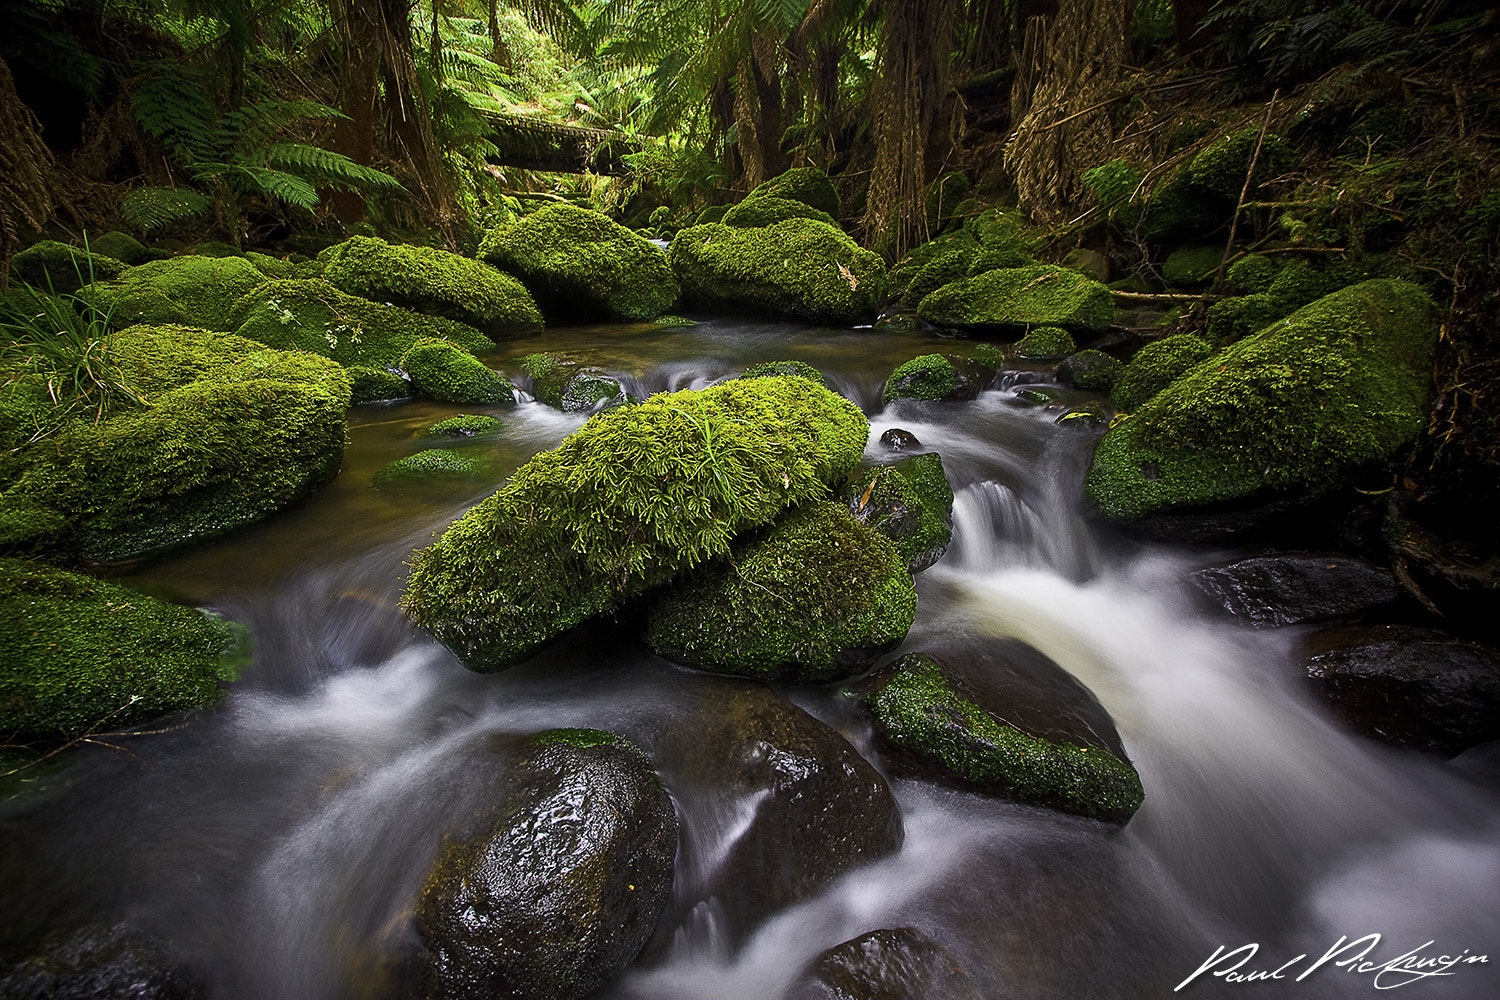 Photograph Otways Flow by Paul Pichugin on 500px